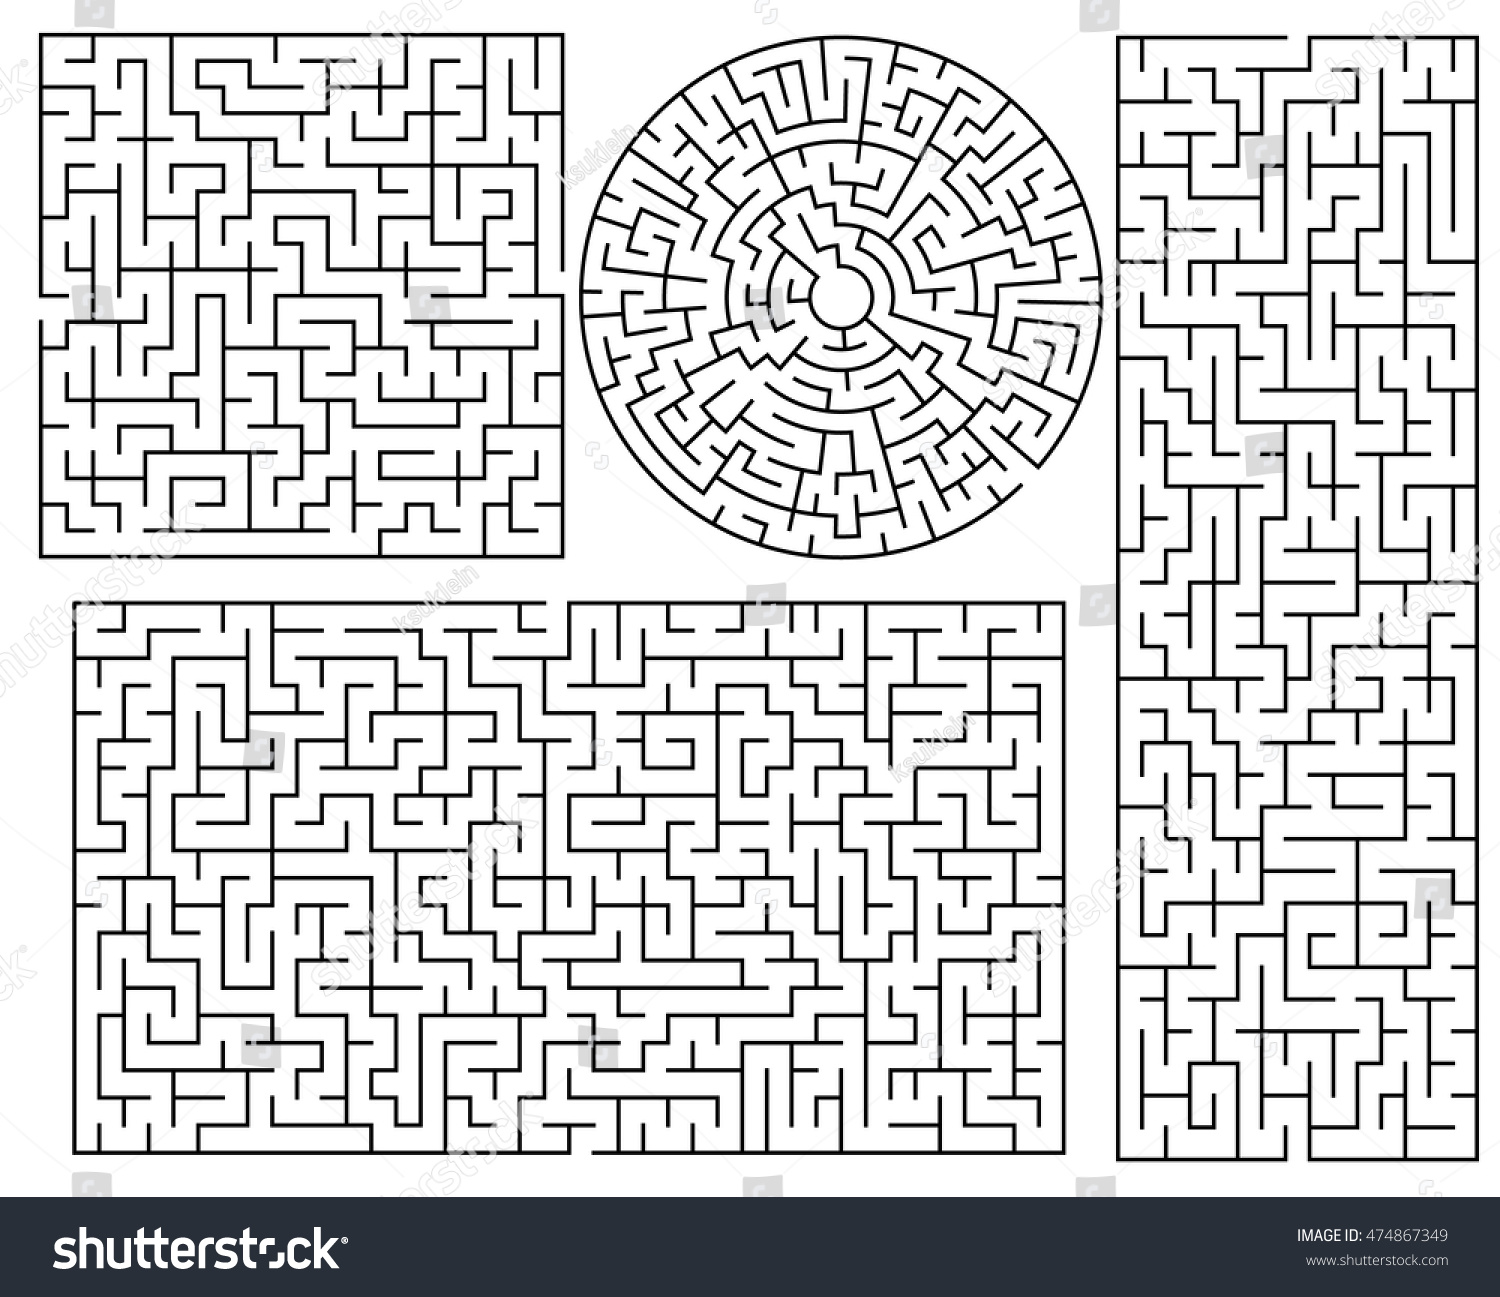 Vector Maze Templates Circle Square Labyrinth Stock Vector (Royalty ...